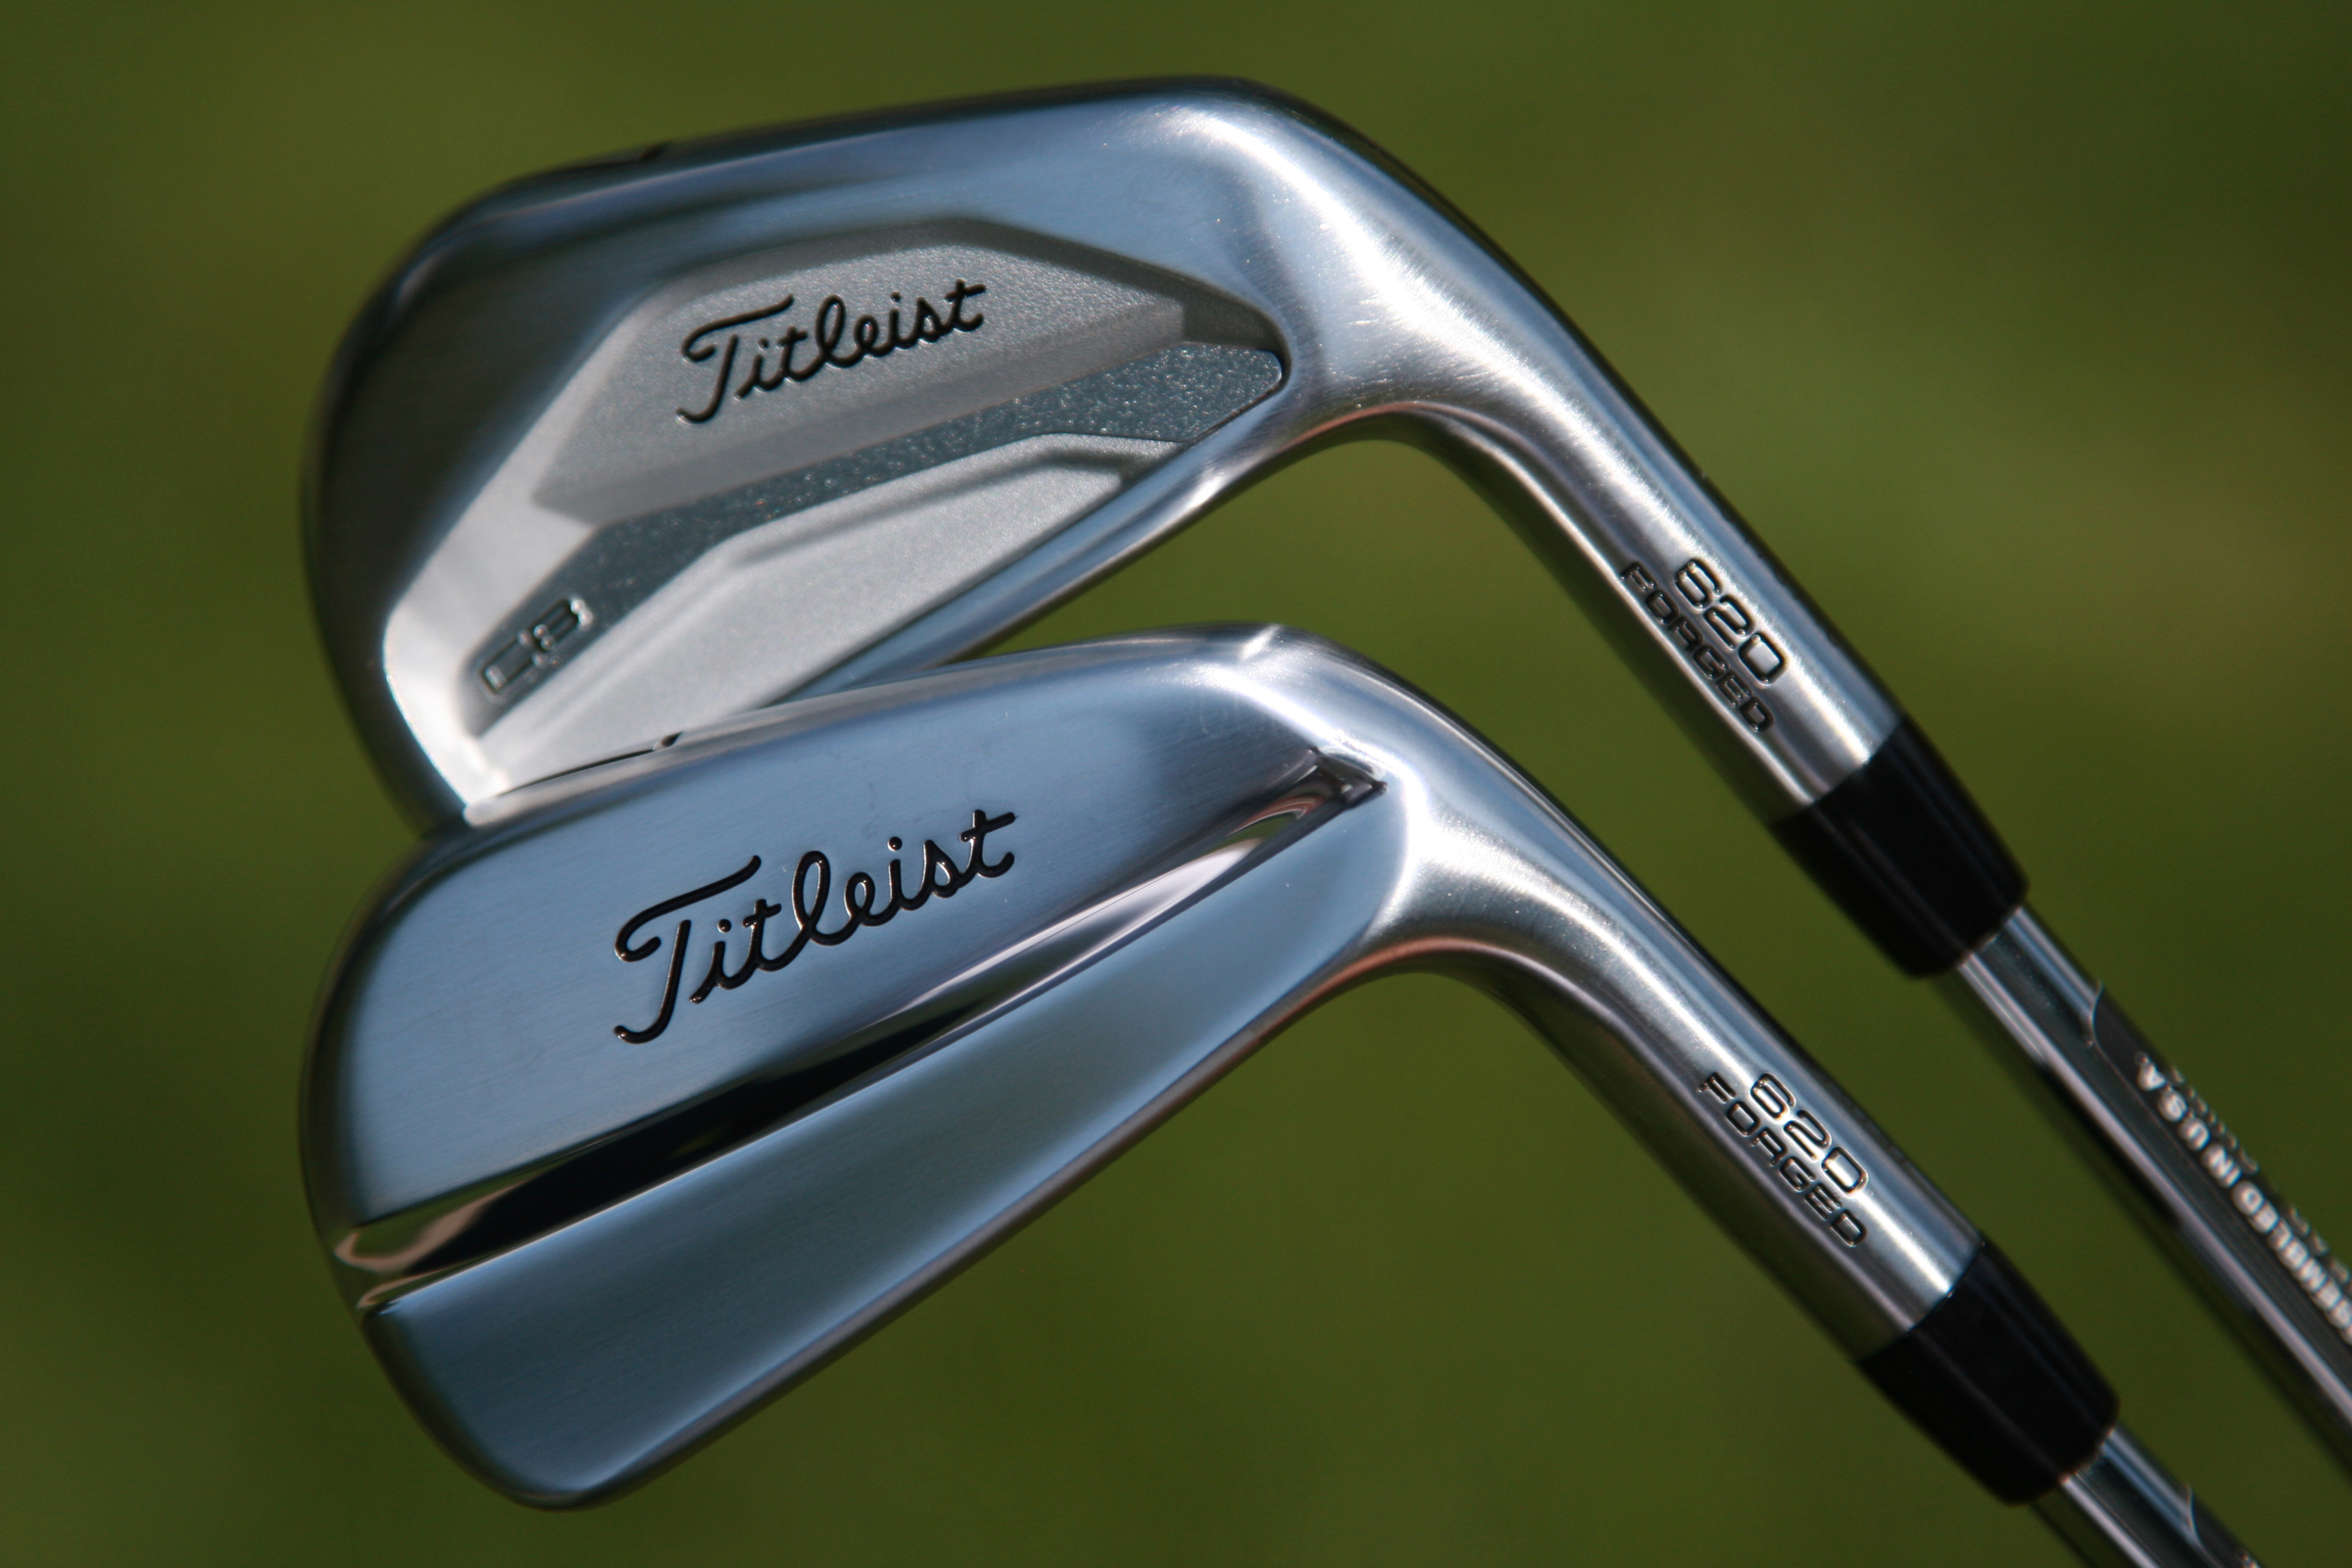 new titleist 620 mb and 620 cb irons